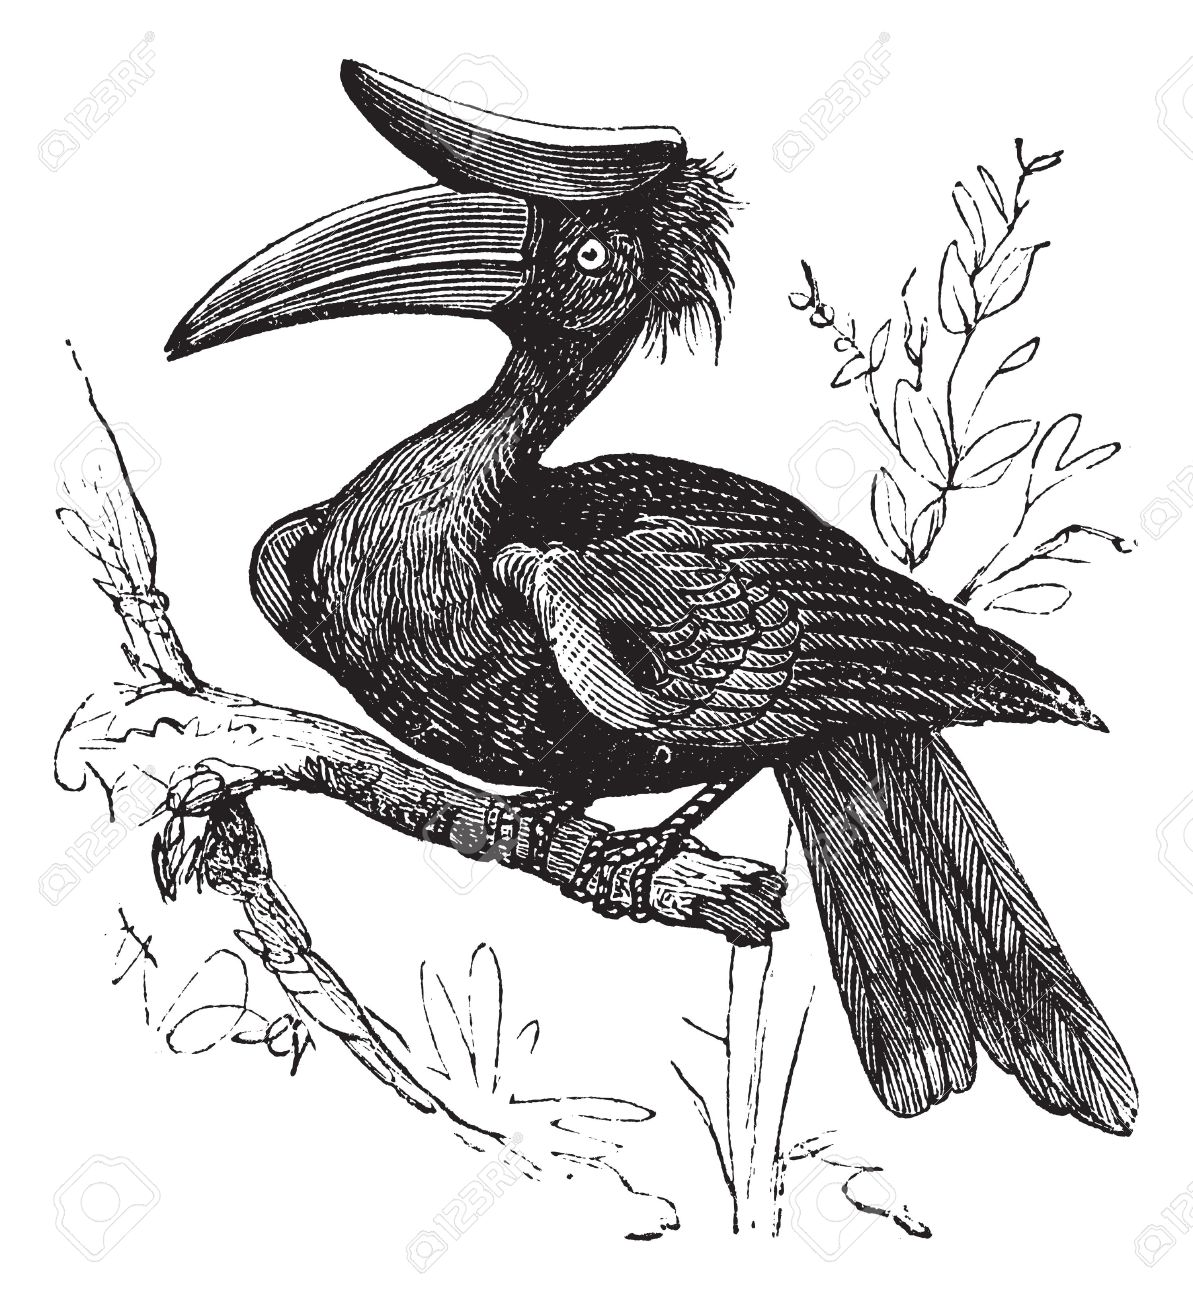 Rhinoceros Hornbill clipart #8, Download drawings